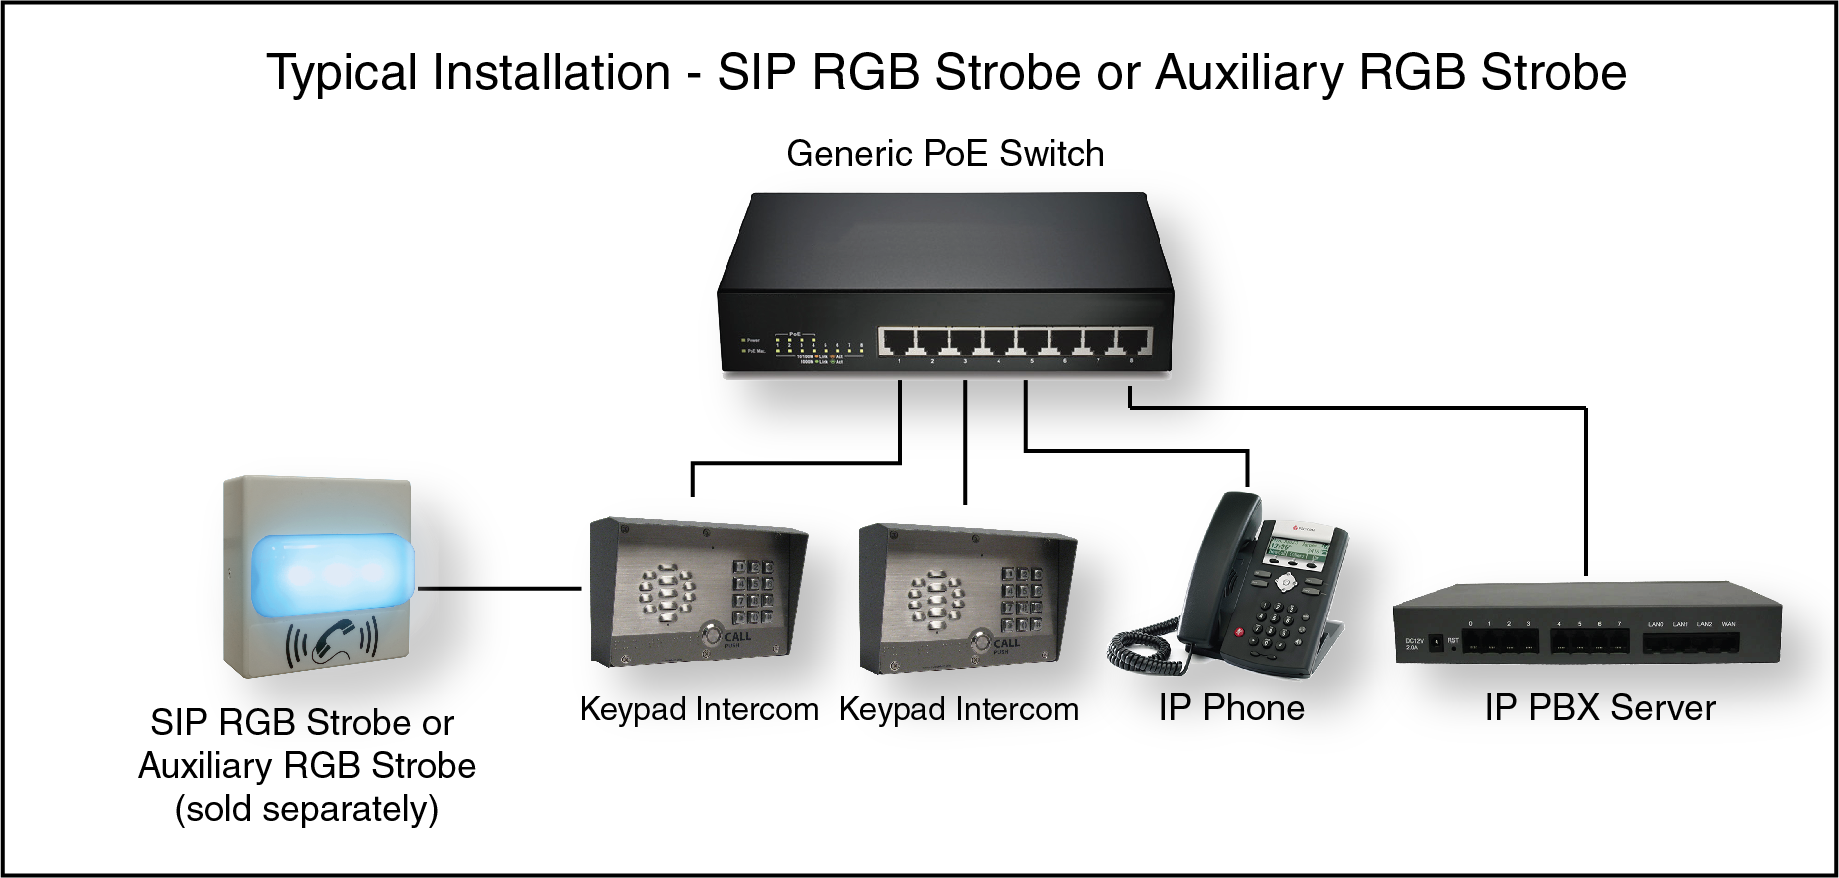 011214 Sip Outdoor Intercom With Keypad Enhanced 4 Digit Alarm By And Gate To Auxiliary Rgb Strobe Connections